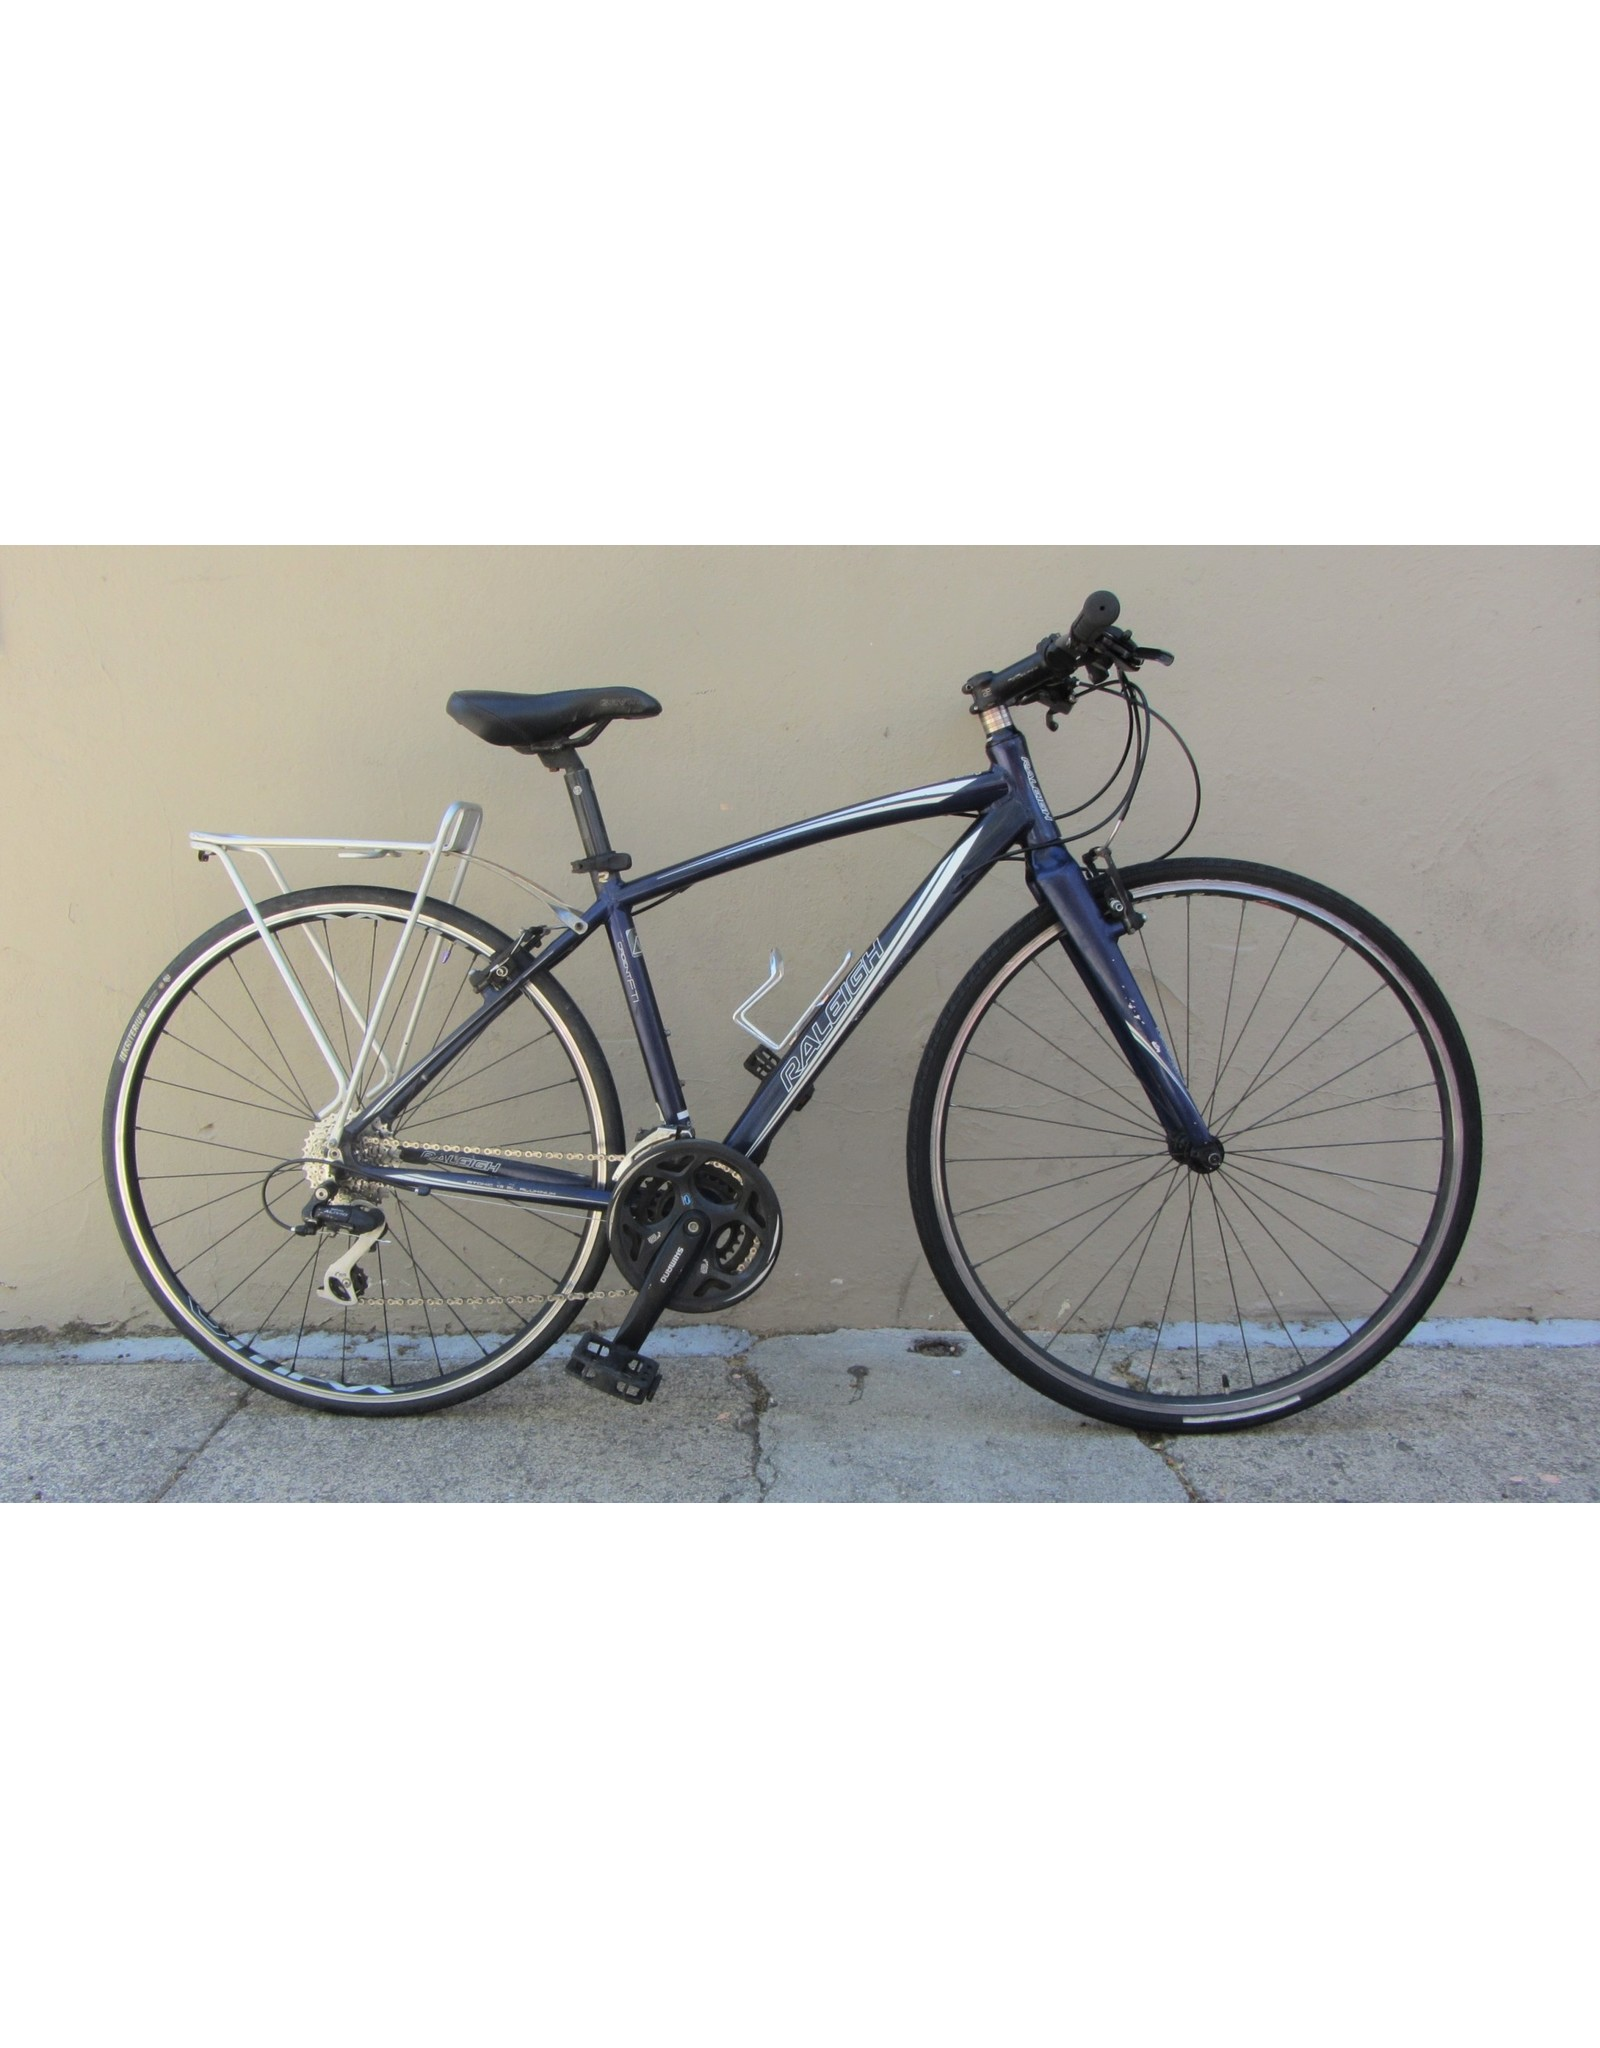 Raleigh Raleigh Cadent FT1 Hybrid, 2011, Blue 18 Inches